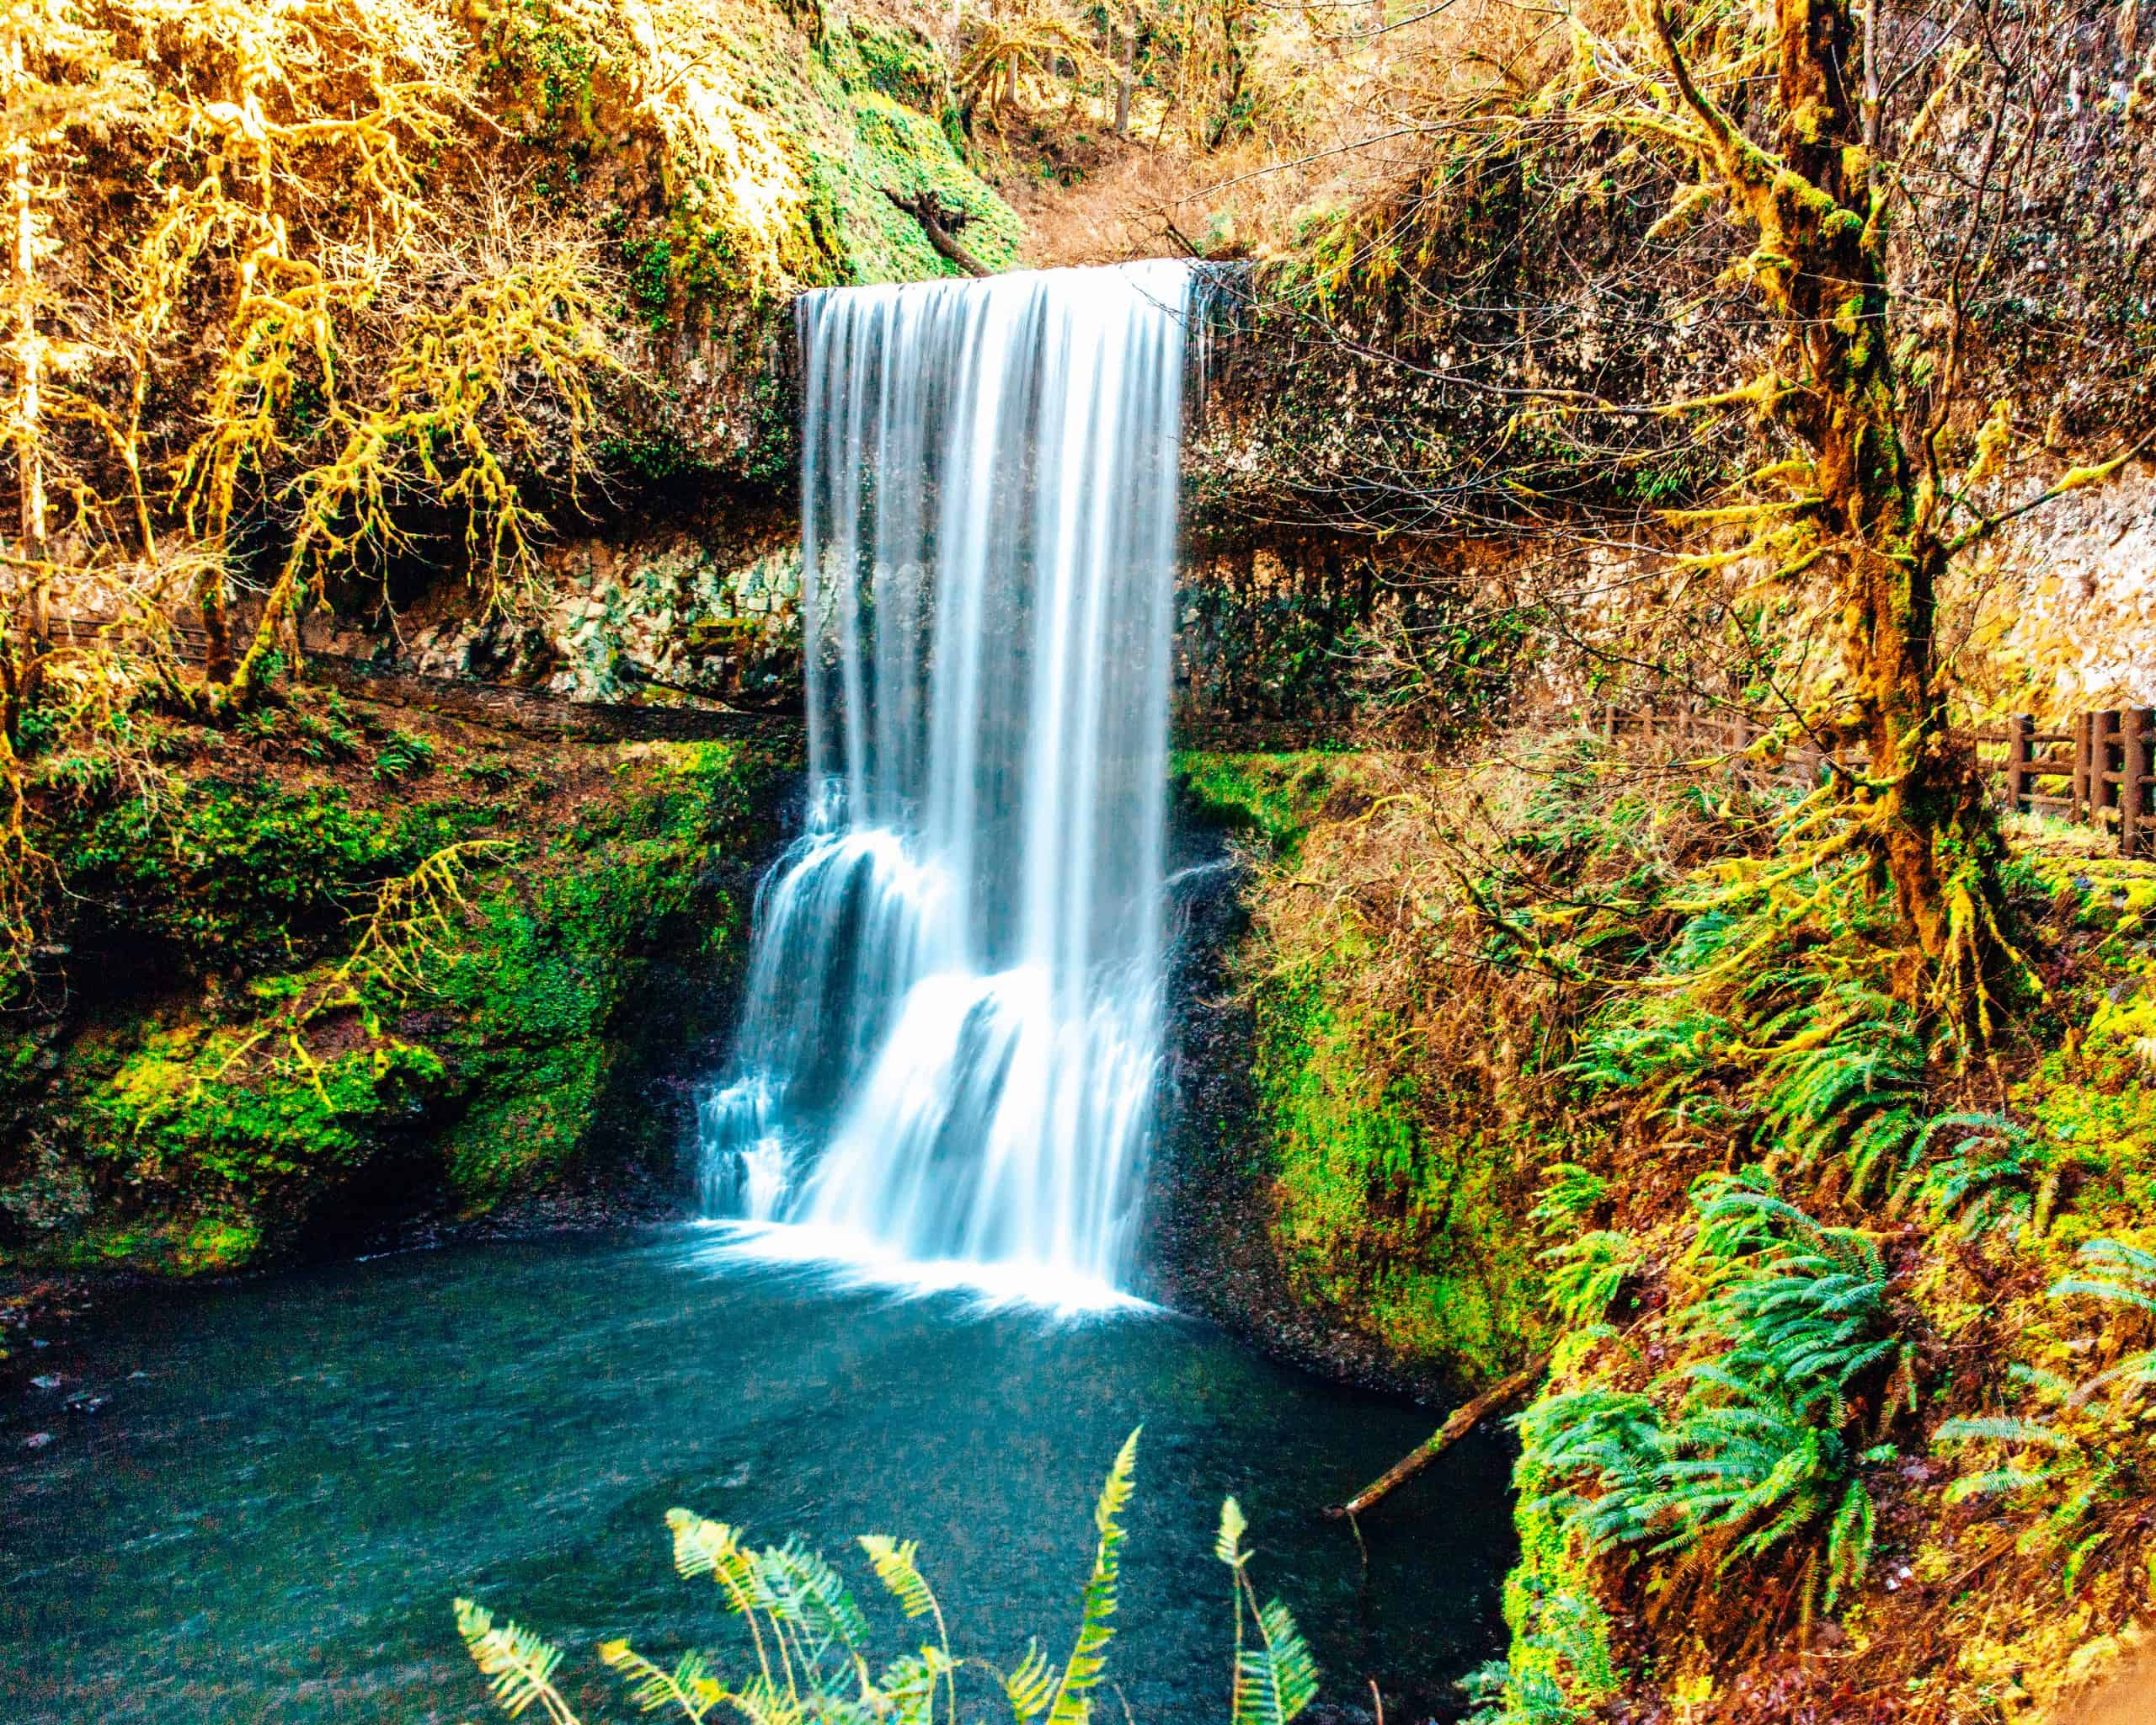 Oregon Waterfall in Silver Falls State Park